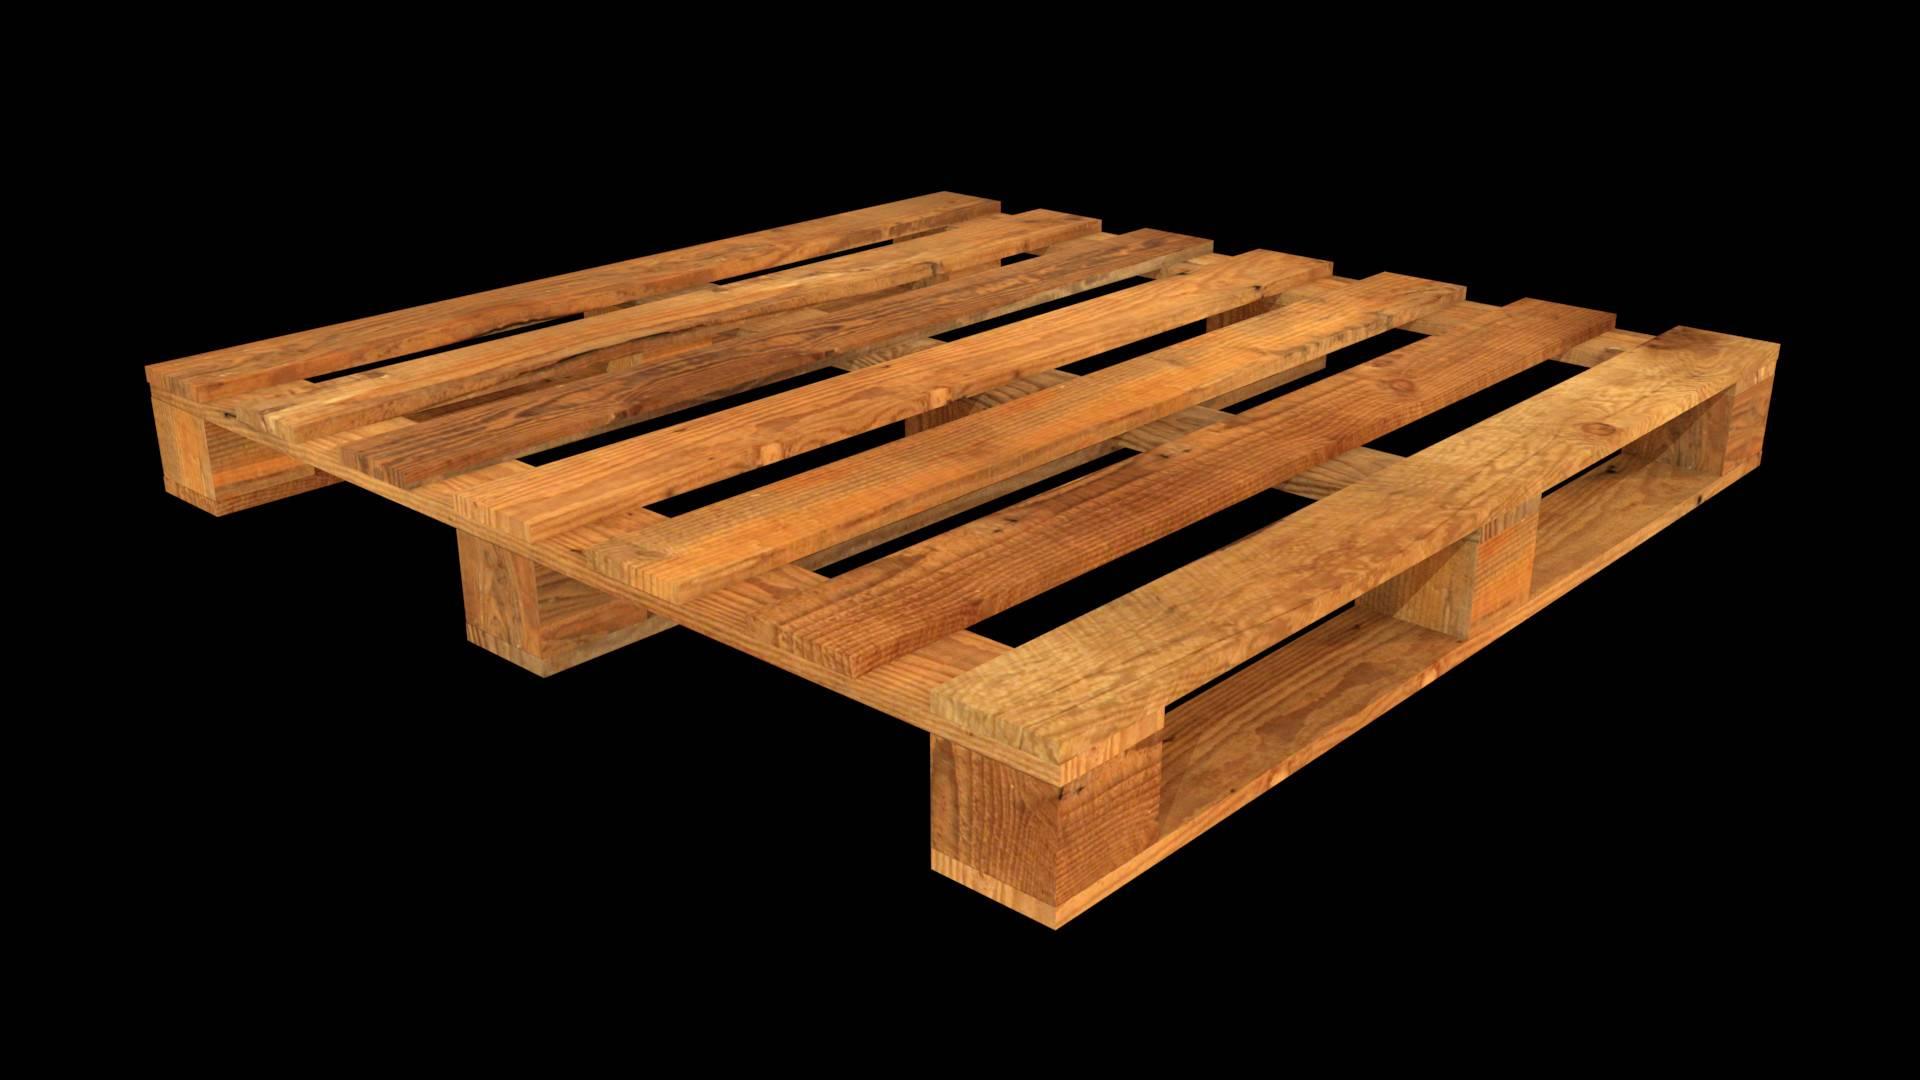 Wooden Pallet Types Malaysia Two Way Four - Can Crusade